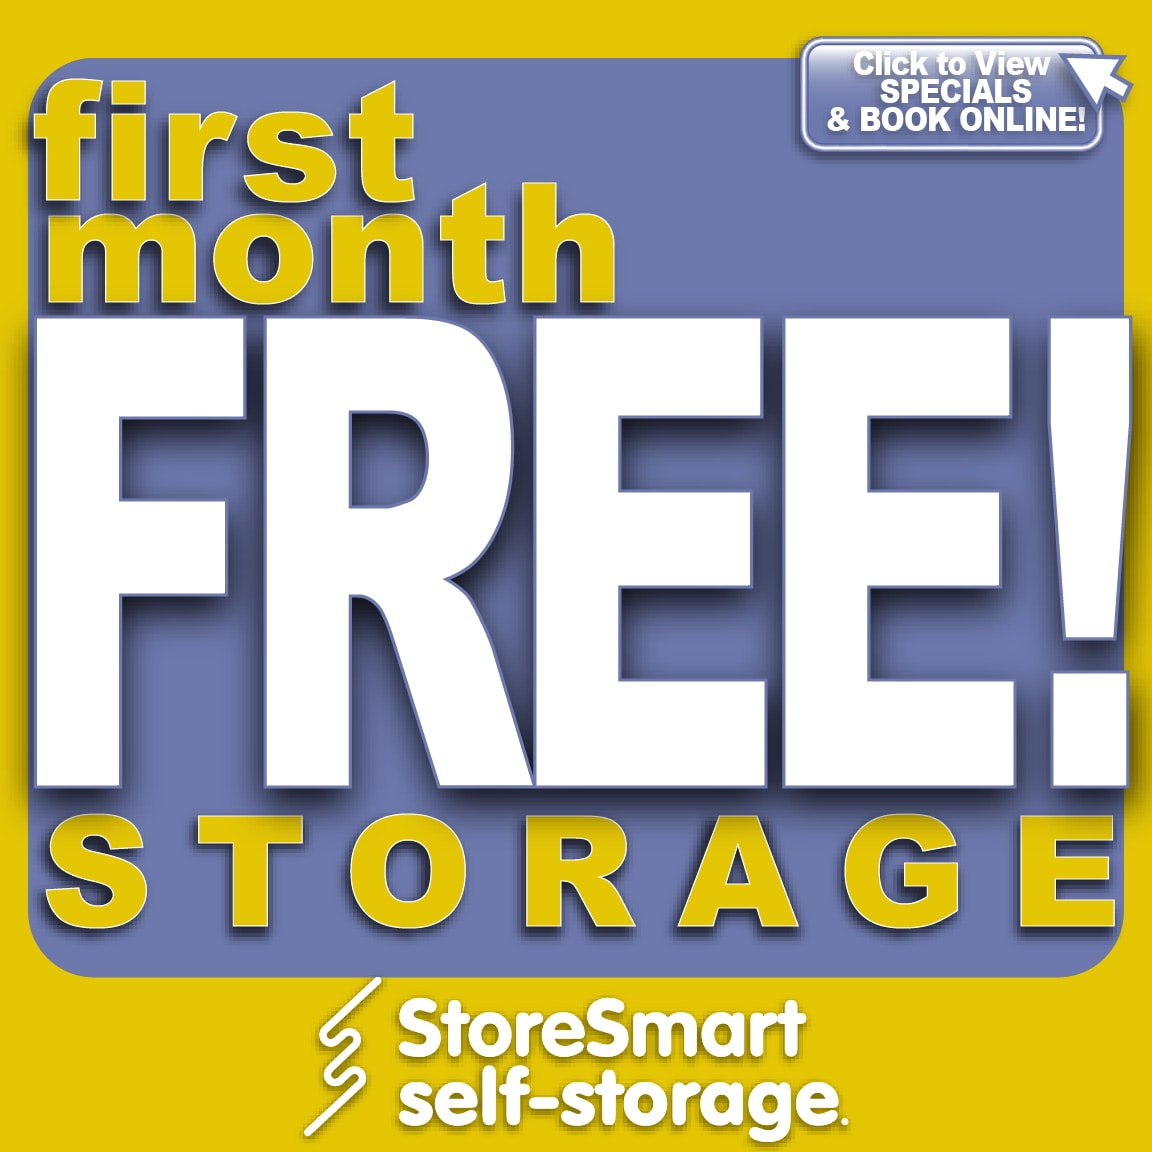 Special at StoreSmart Self-Storage in Rockledge, Florida